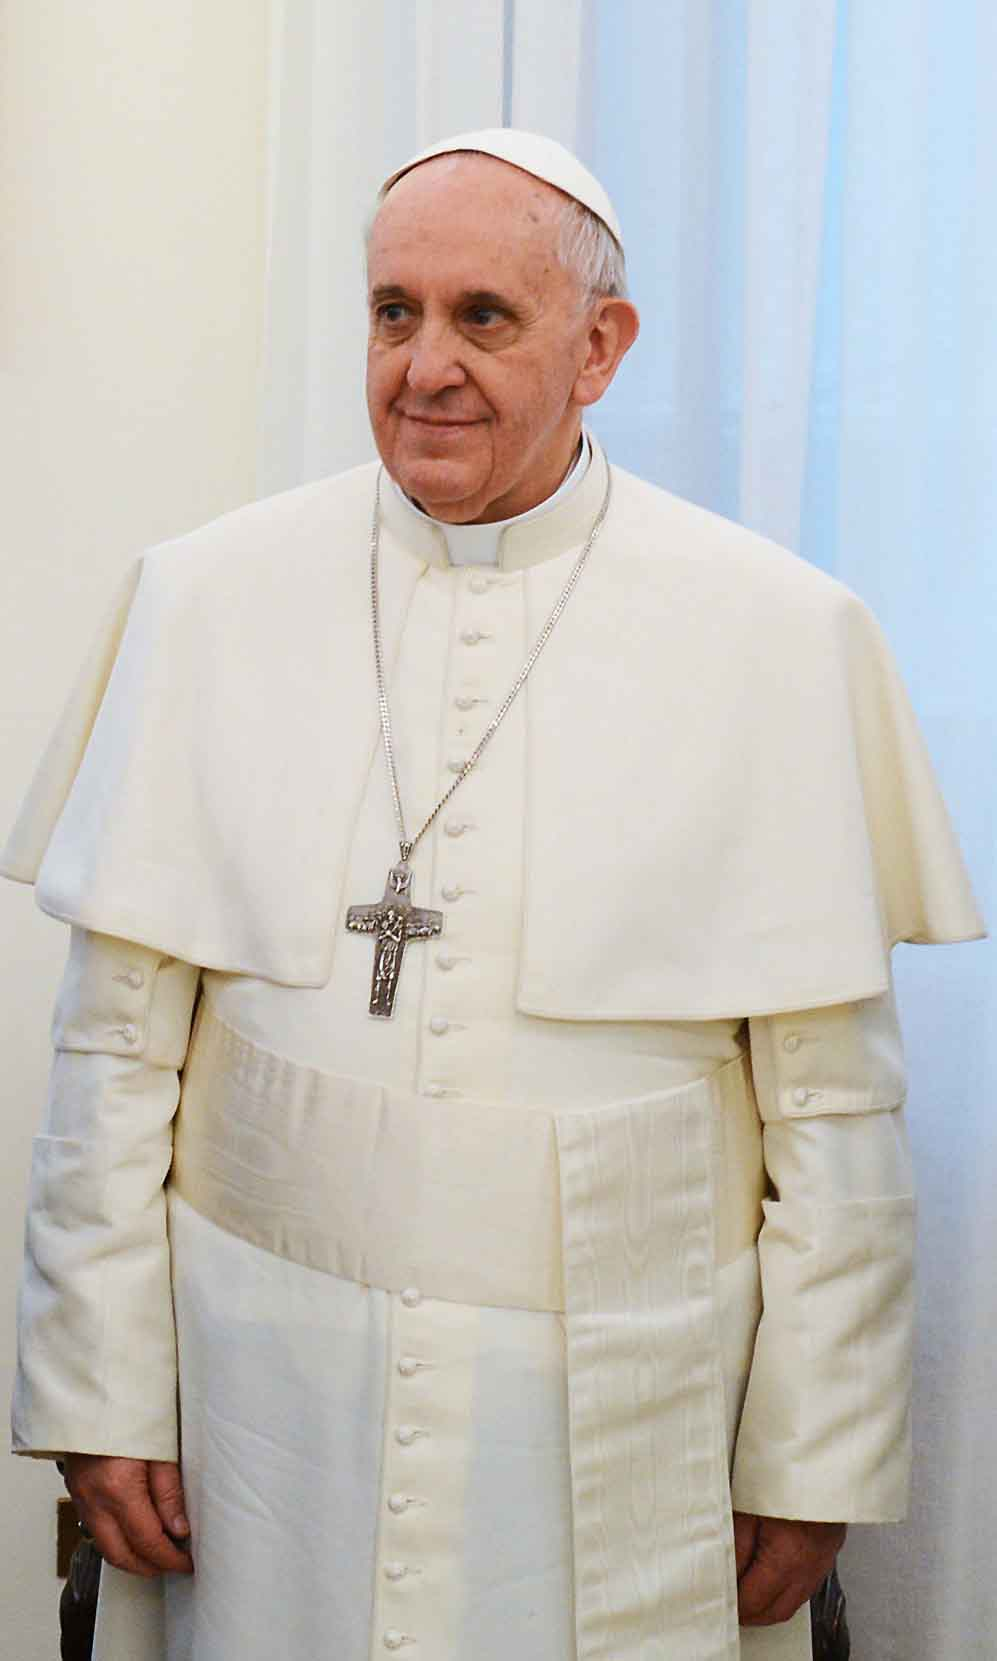 Pope Francis will complete his anniversary of being pontiff on Thursday, March 13.